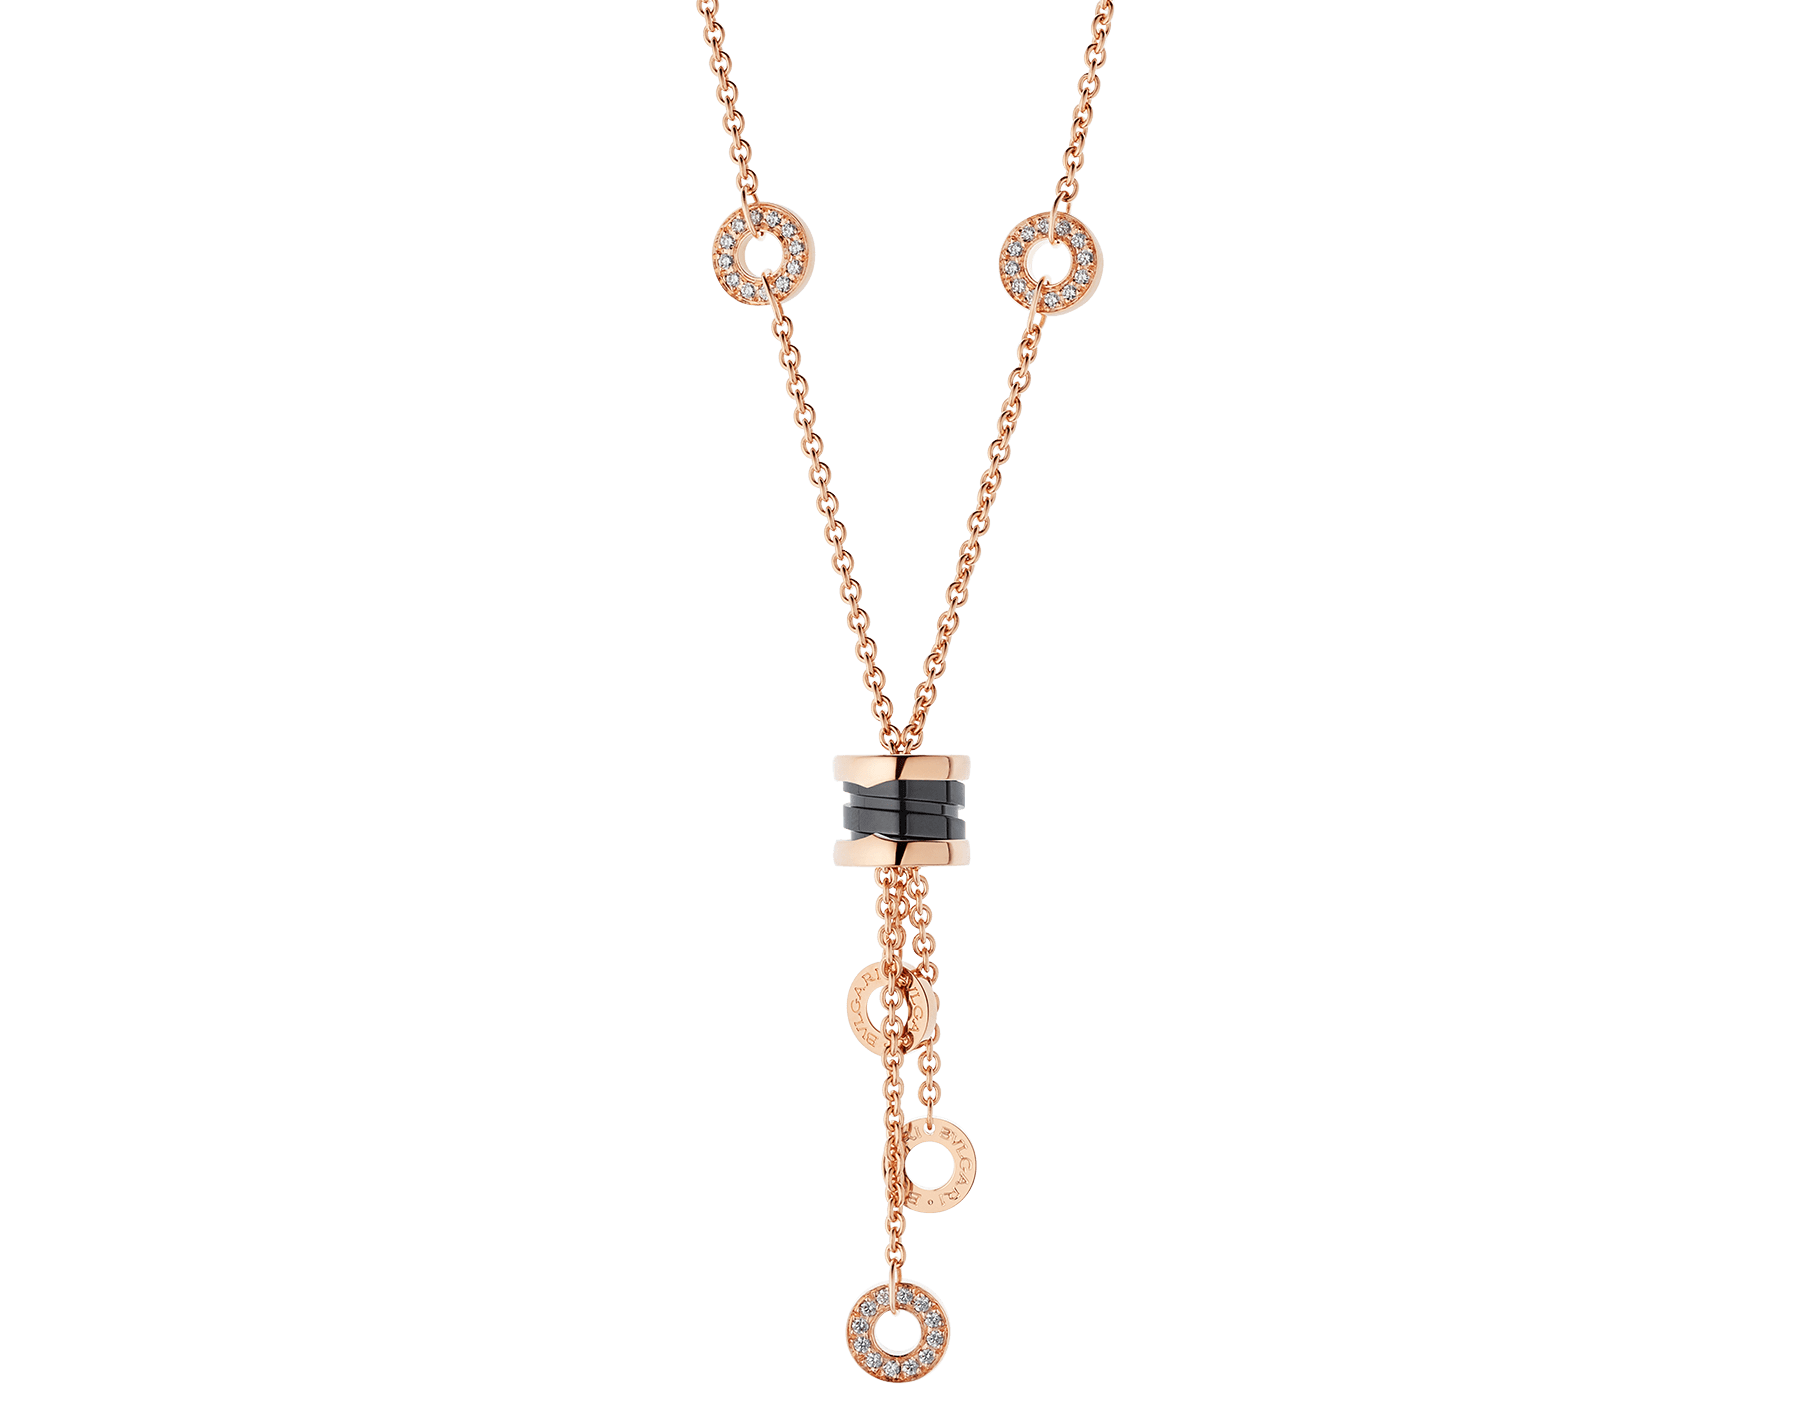 B.zero1 necklace with 18 kt rose gold chain set with pavé diamonds and pendant in 18 kt rose gold and black ceramic. 347578 image 1